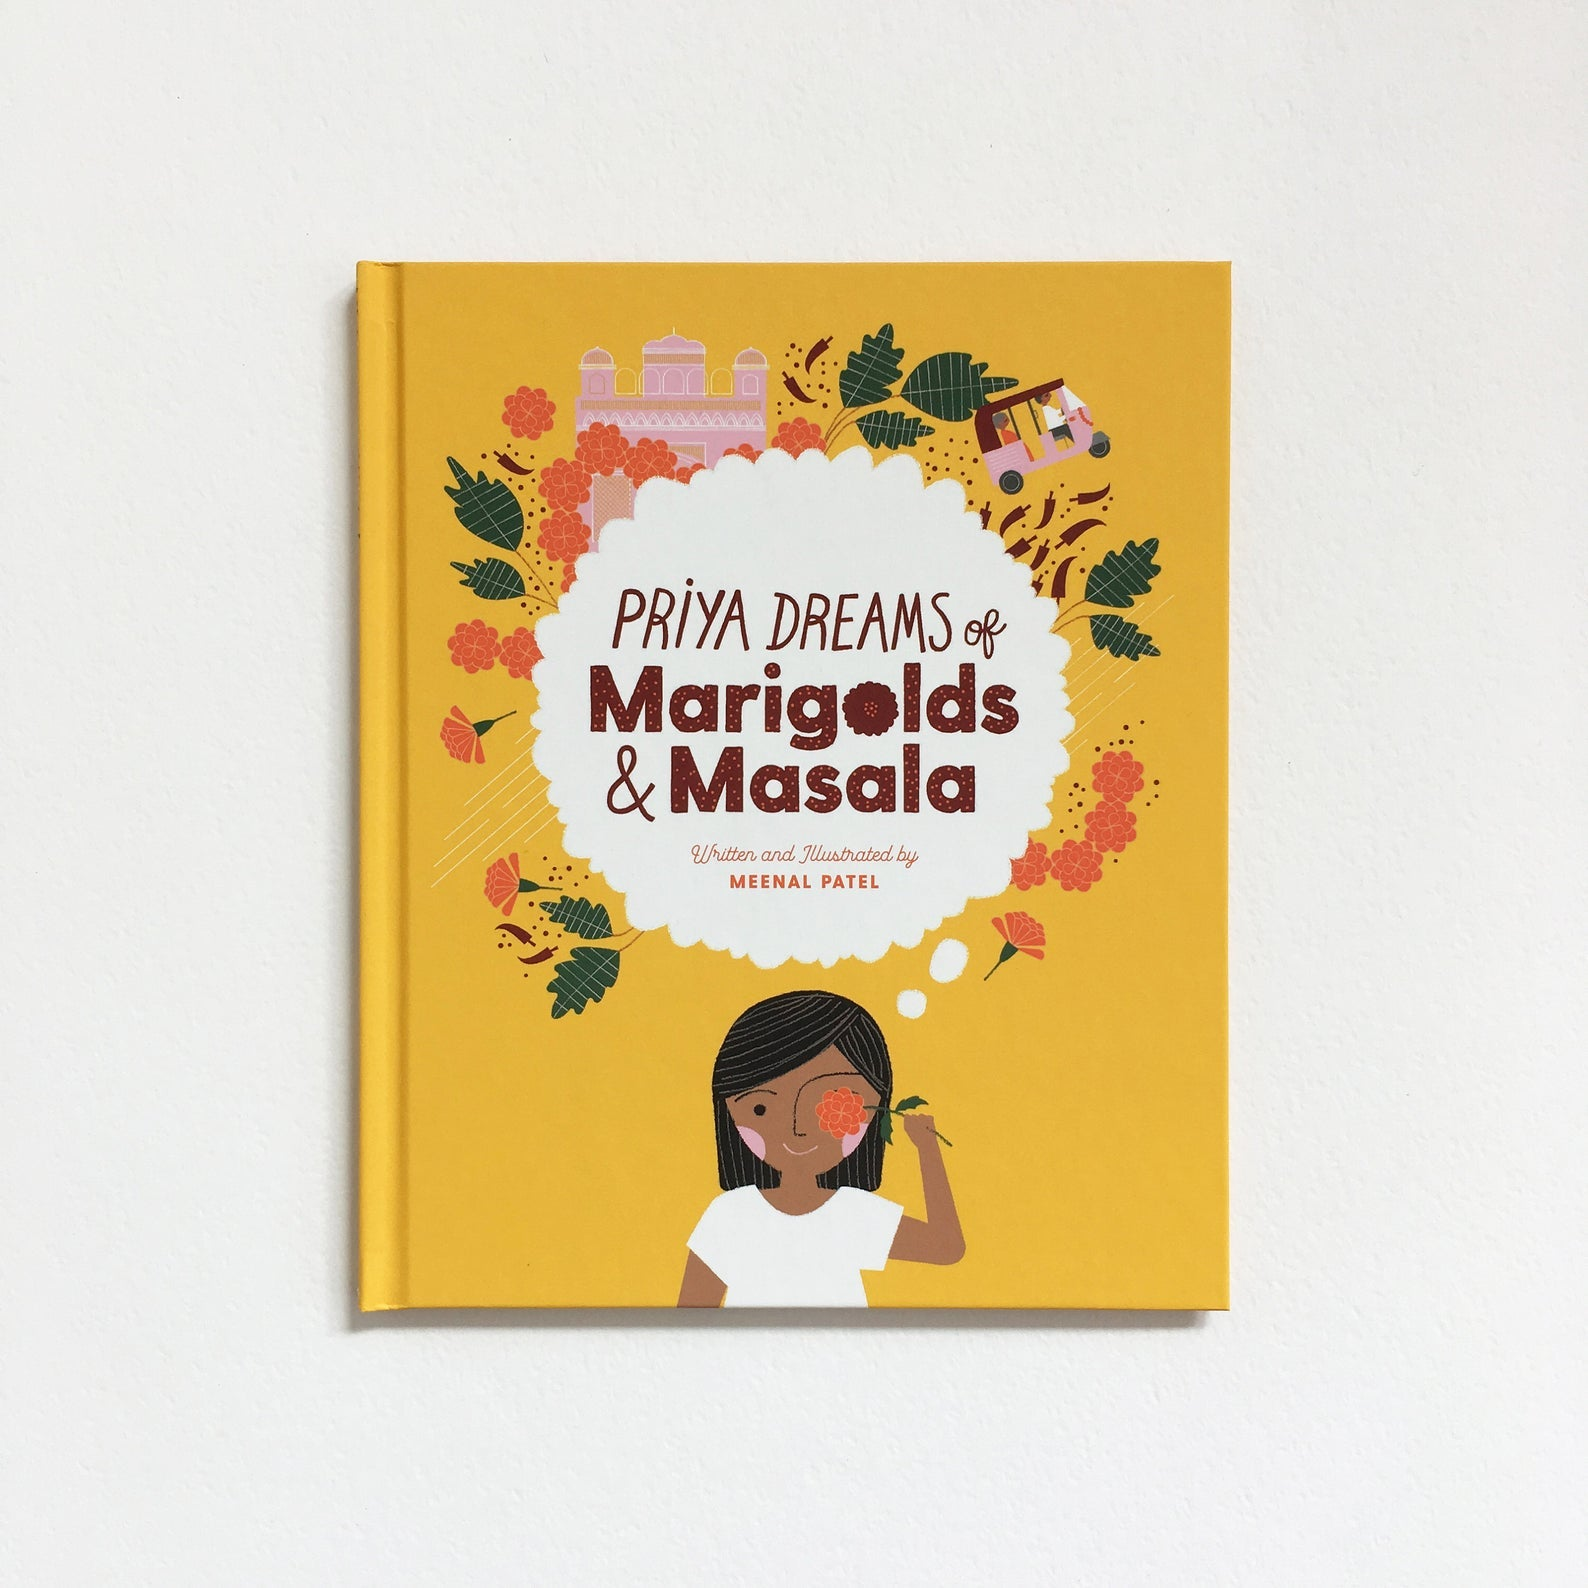 Priya Dreams of Marigolds and Masala - by Meenal Patel